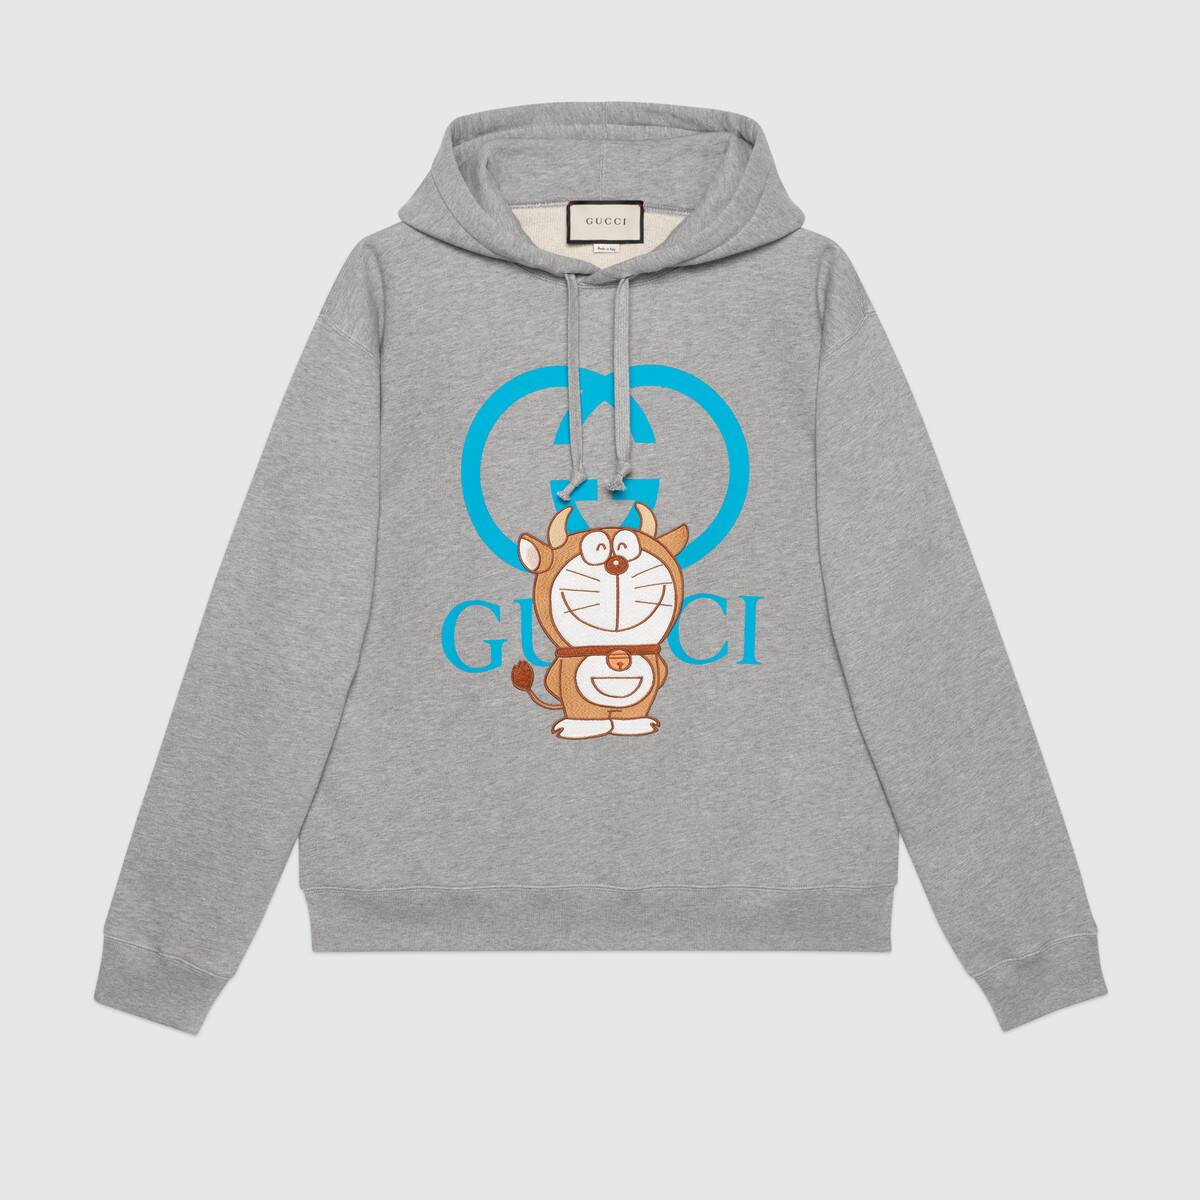 gucci doraemon sweatshirt for men